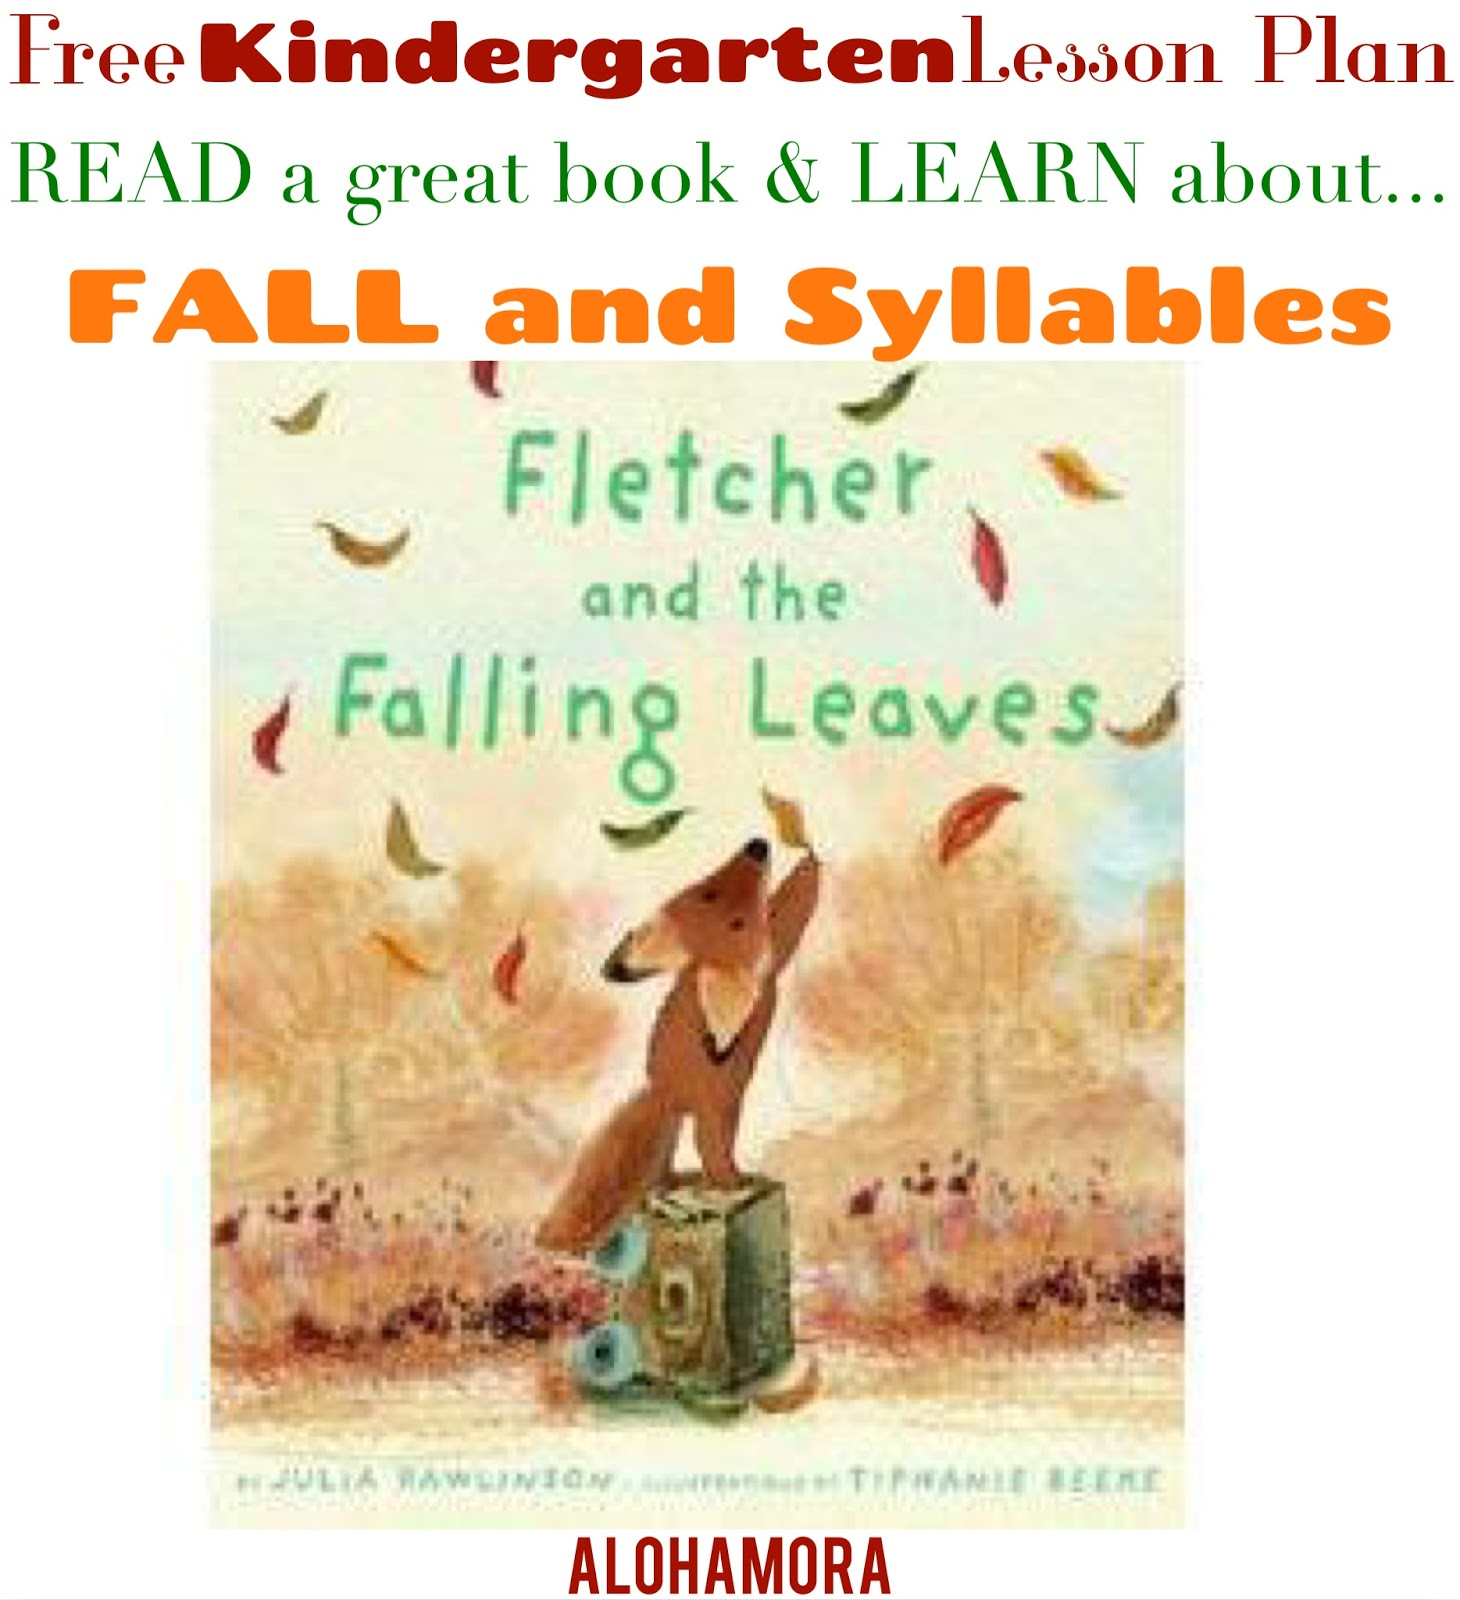 Alohamora Open A Book Kindergarten Free Lesson Plan For Teaching Fall Autumn And Syllables